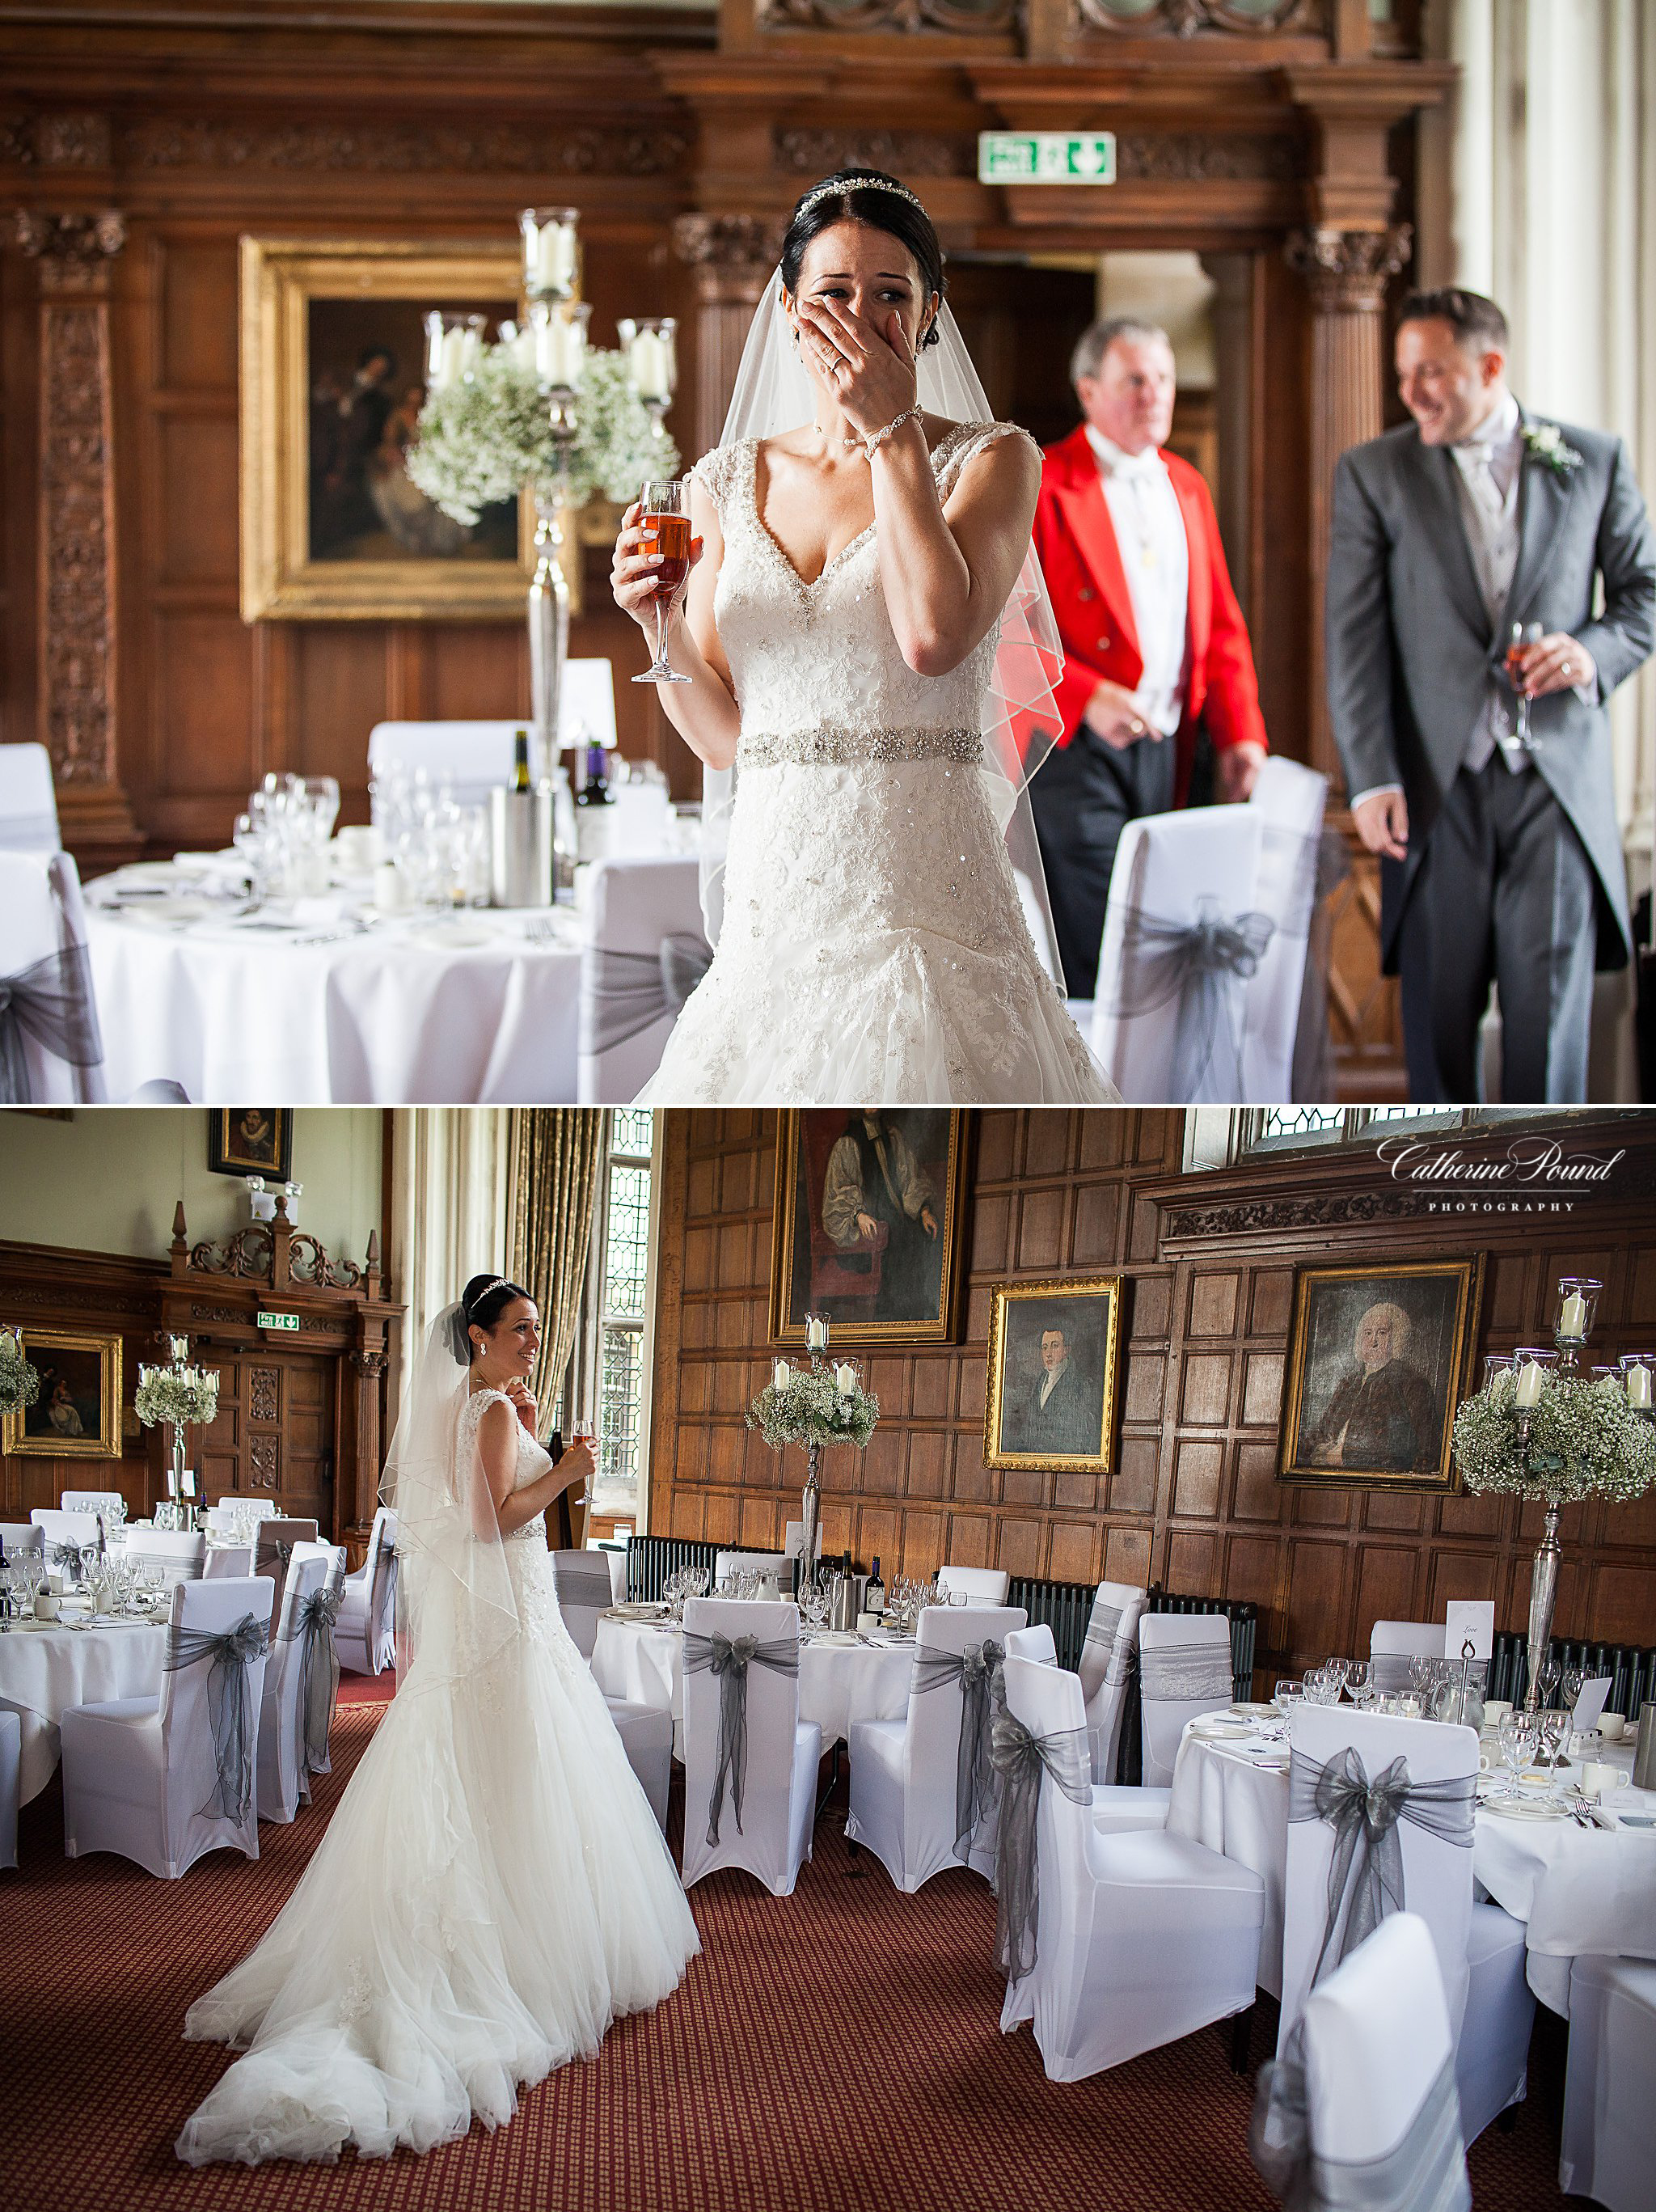 Bride sees her wedding breakfast room